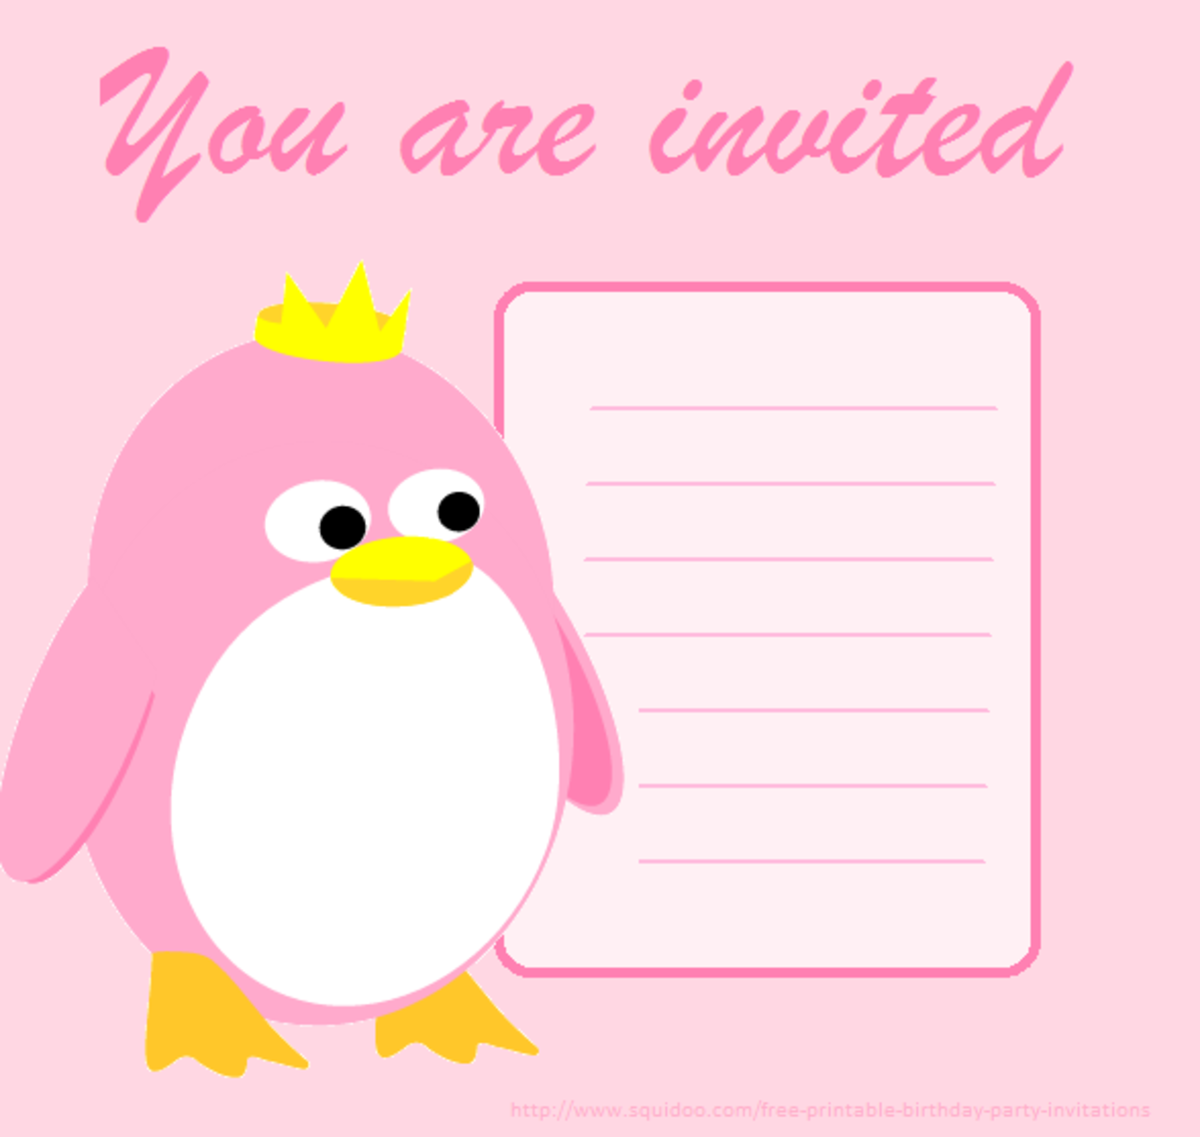 Penguin Princess Invitation. Get it by right clicking and choosing save